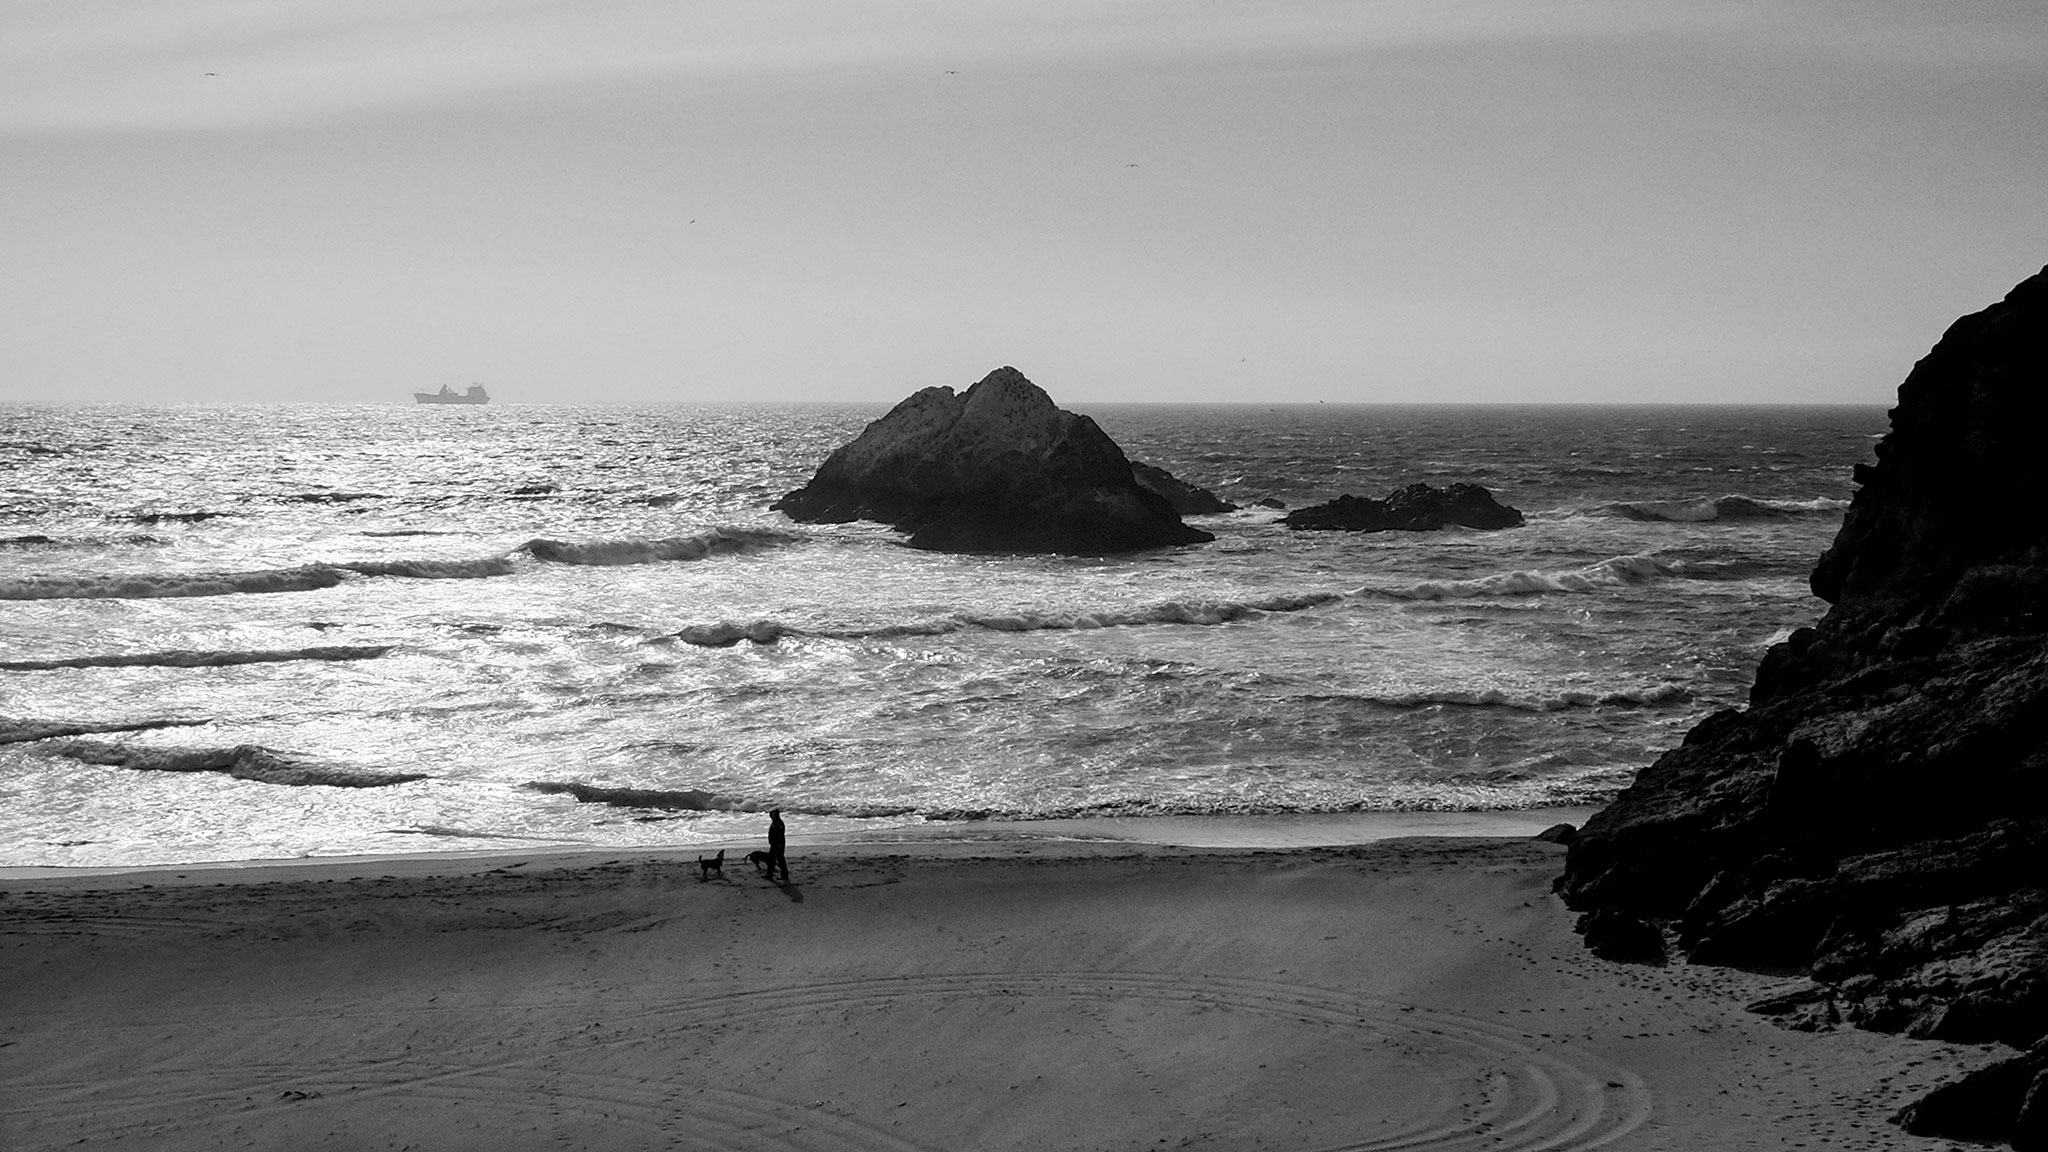 Photo of a San Francisco beach, with rocks, a person walking dogs, truck tracks, and waves and a container ship beyond.